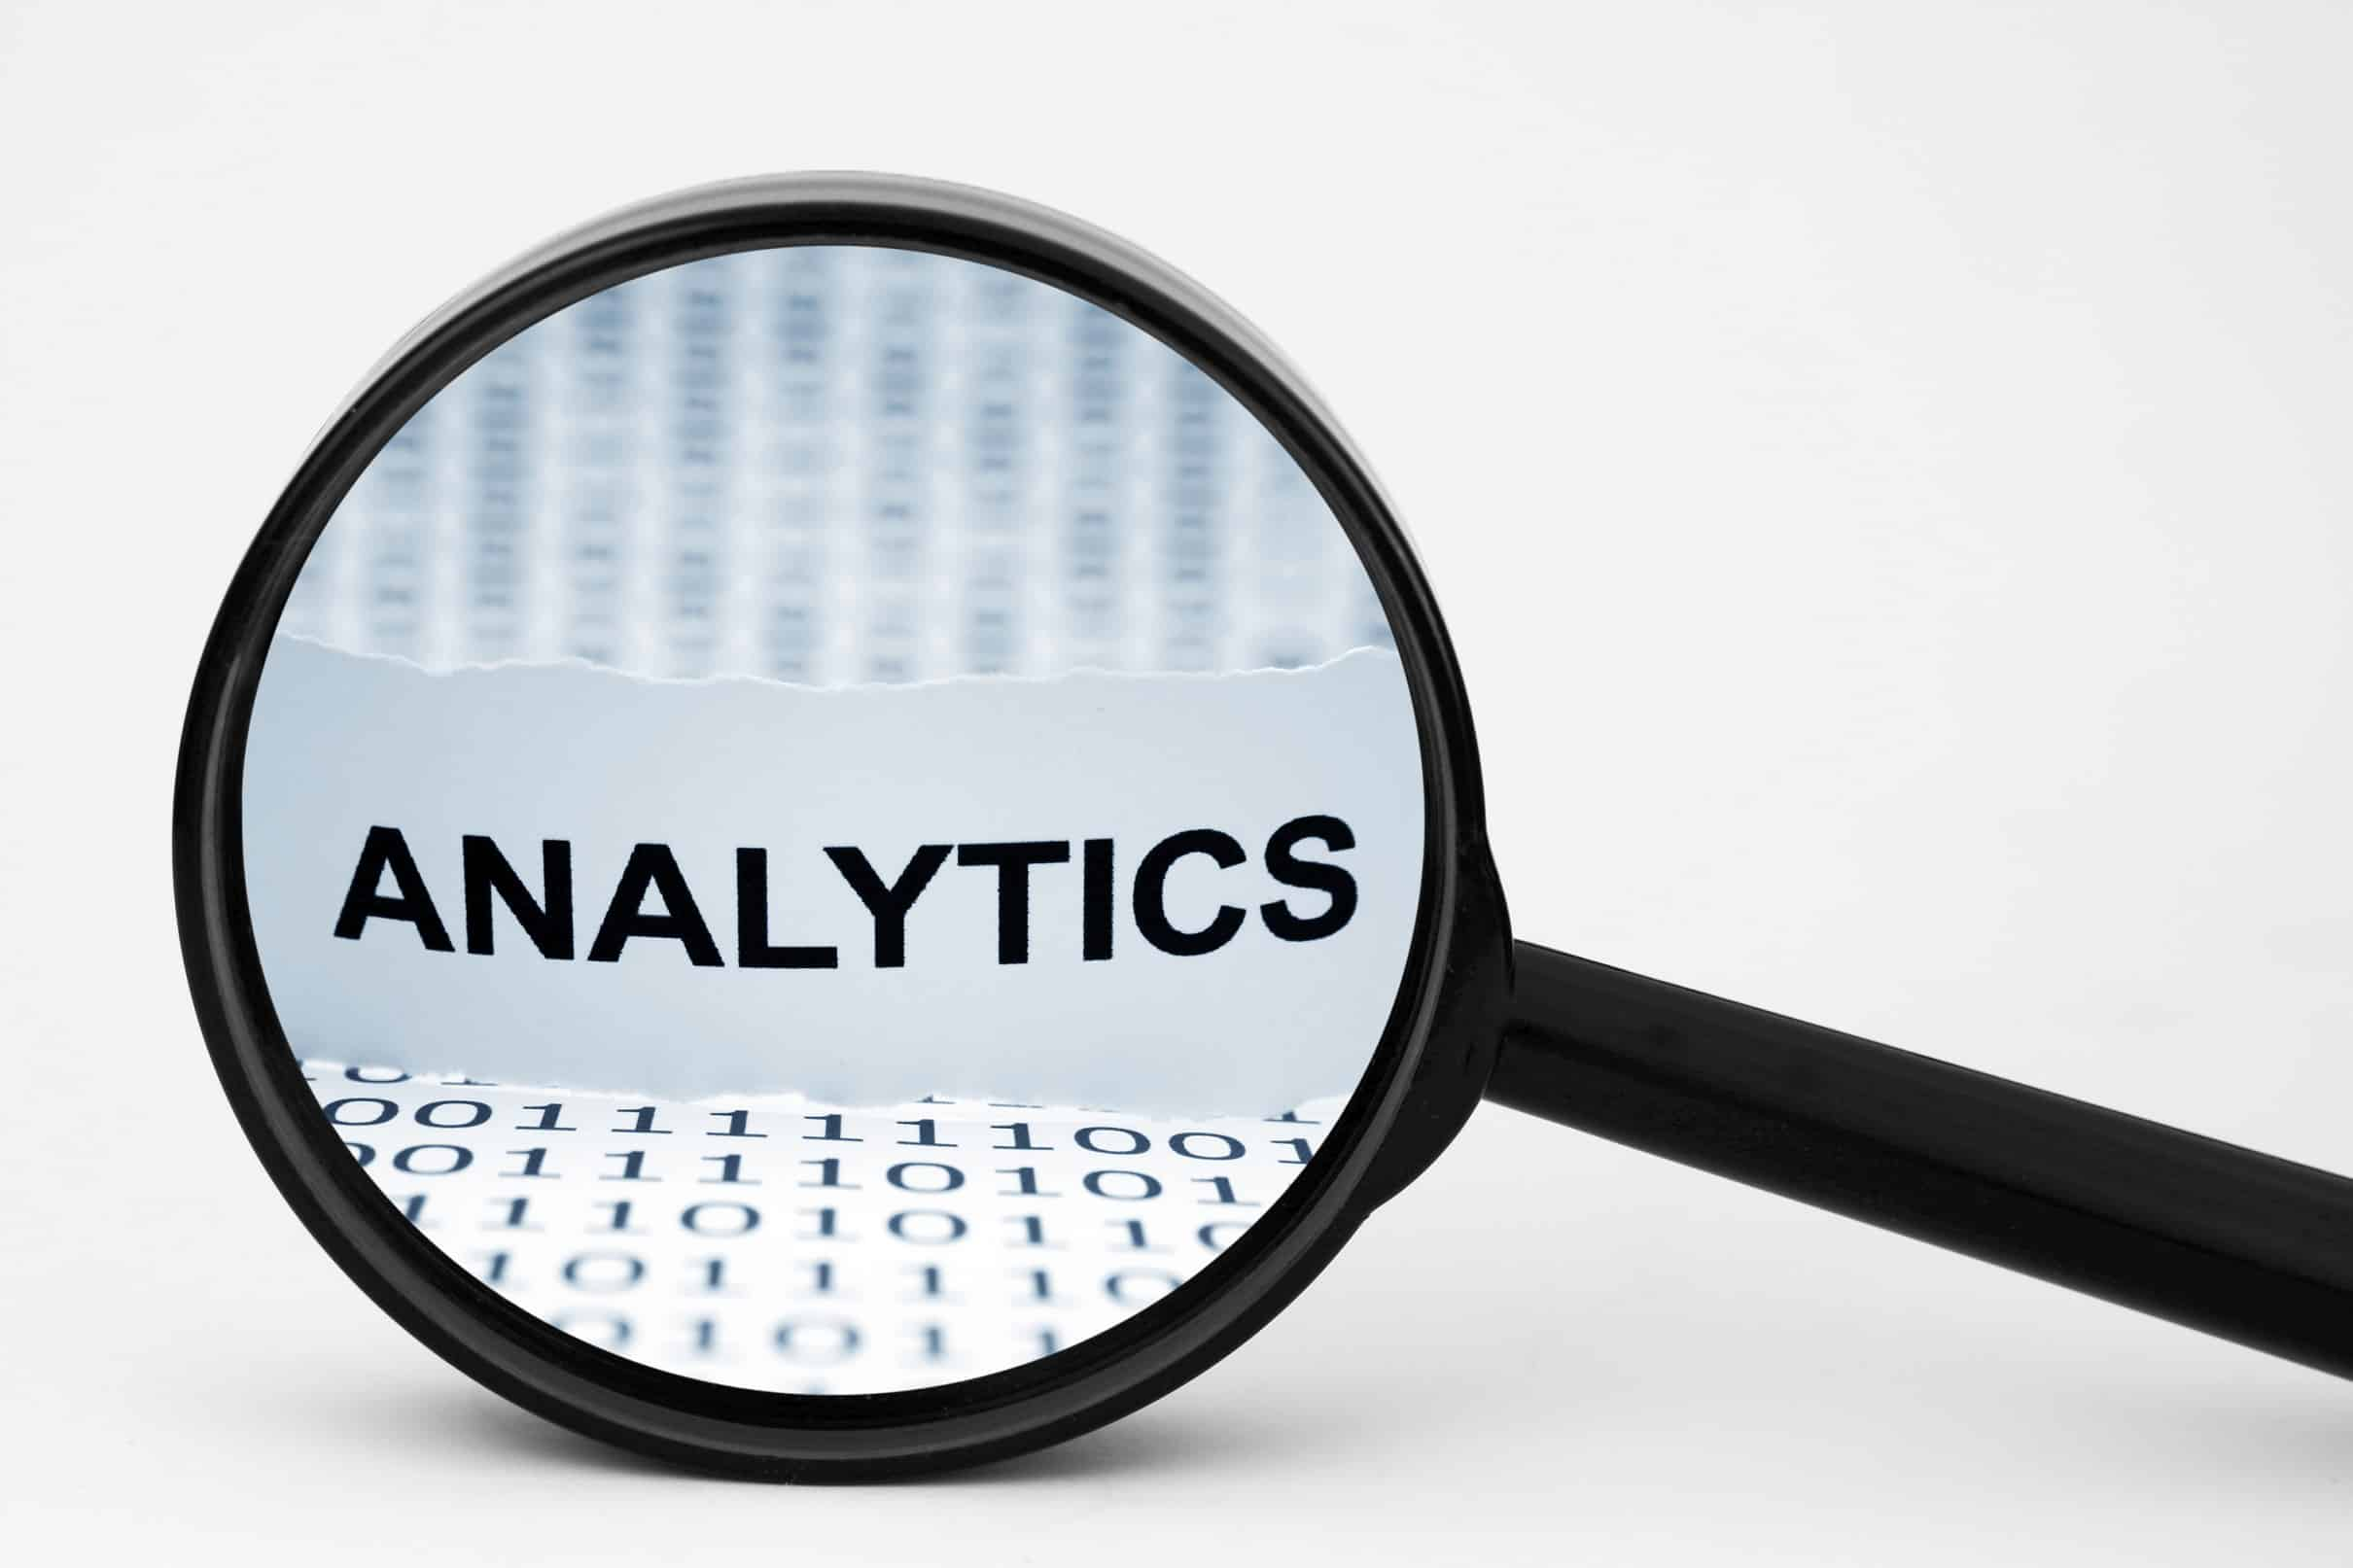 Data Analysis and Traffic Analysis